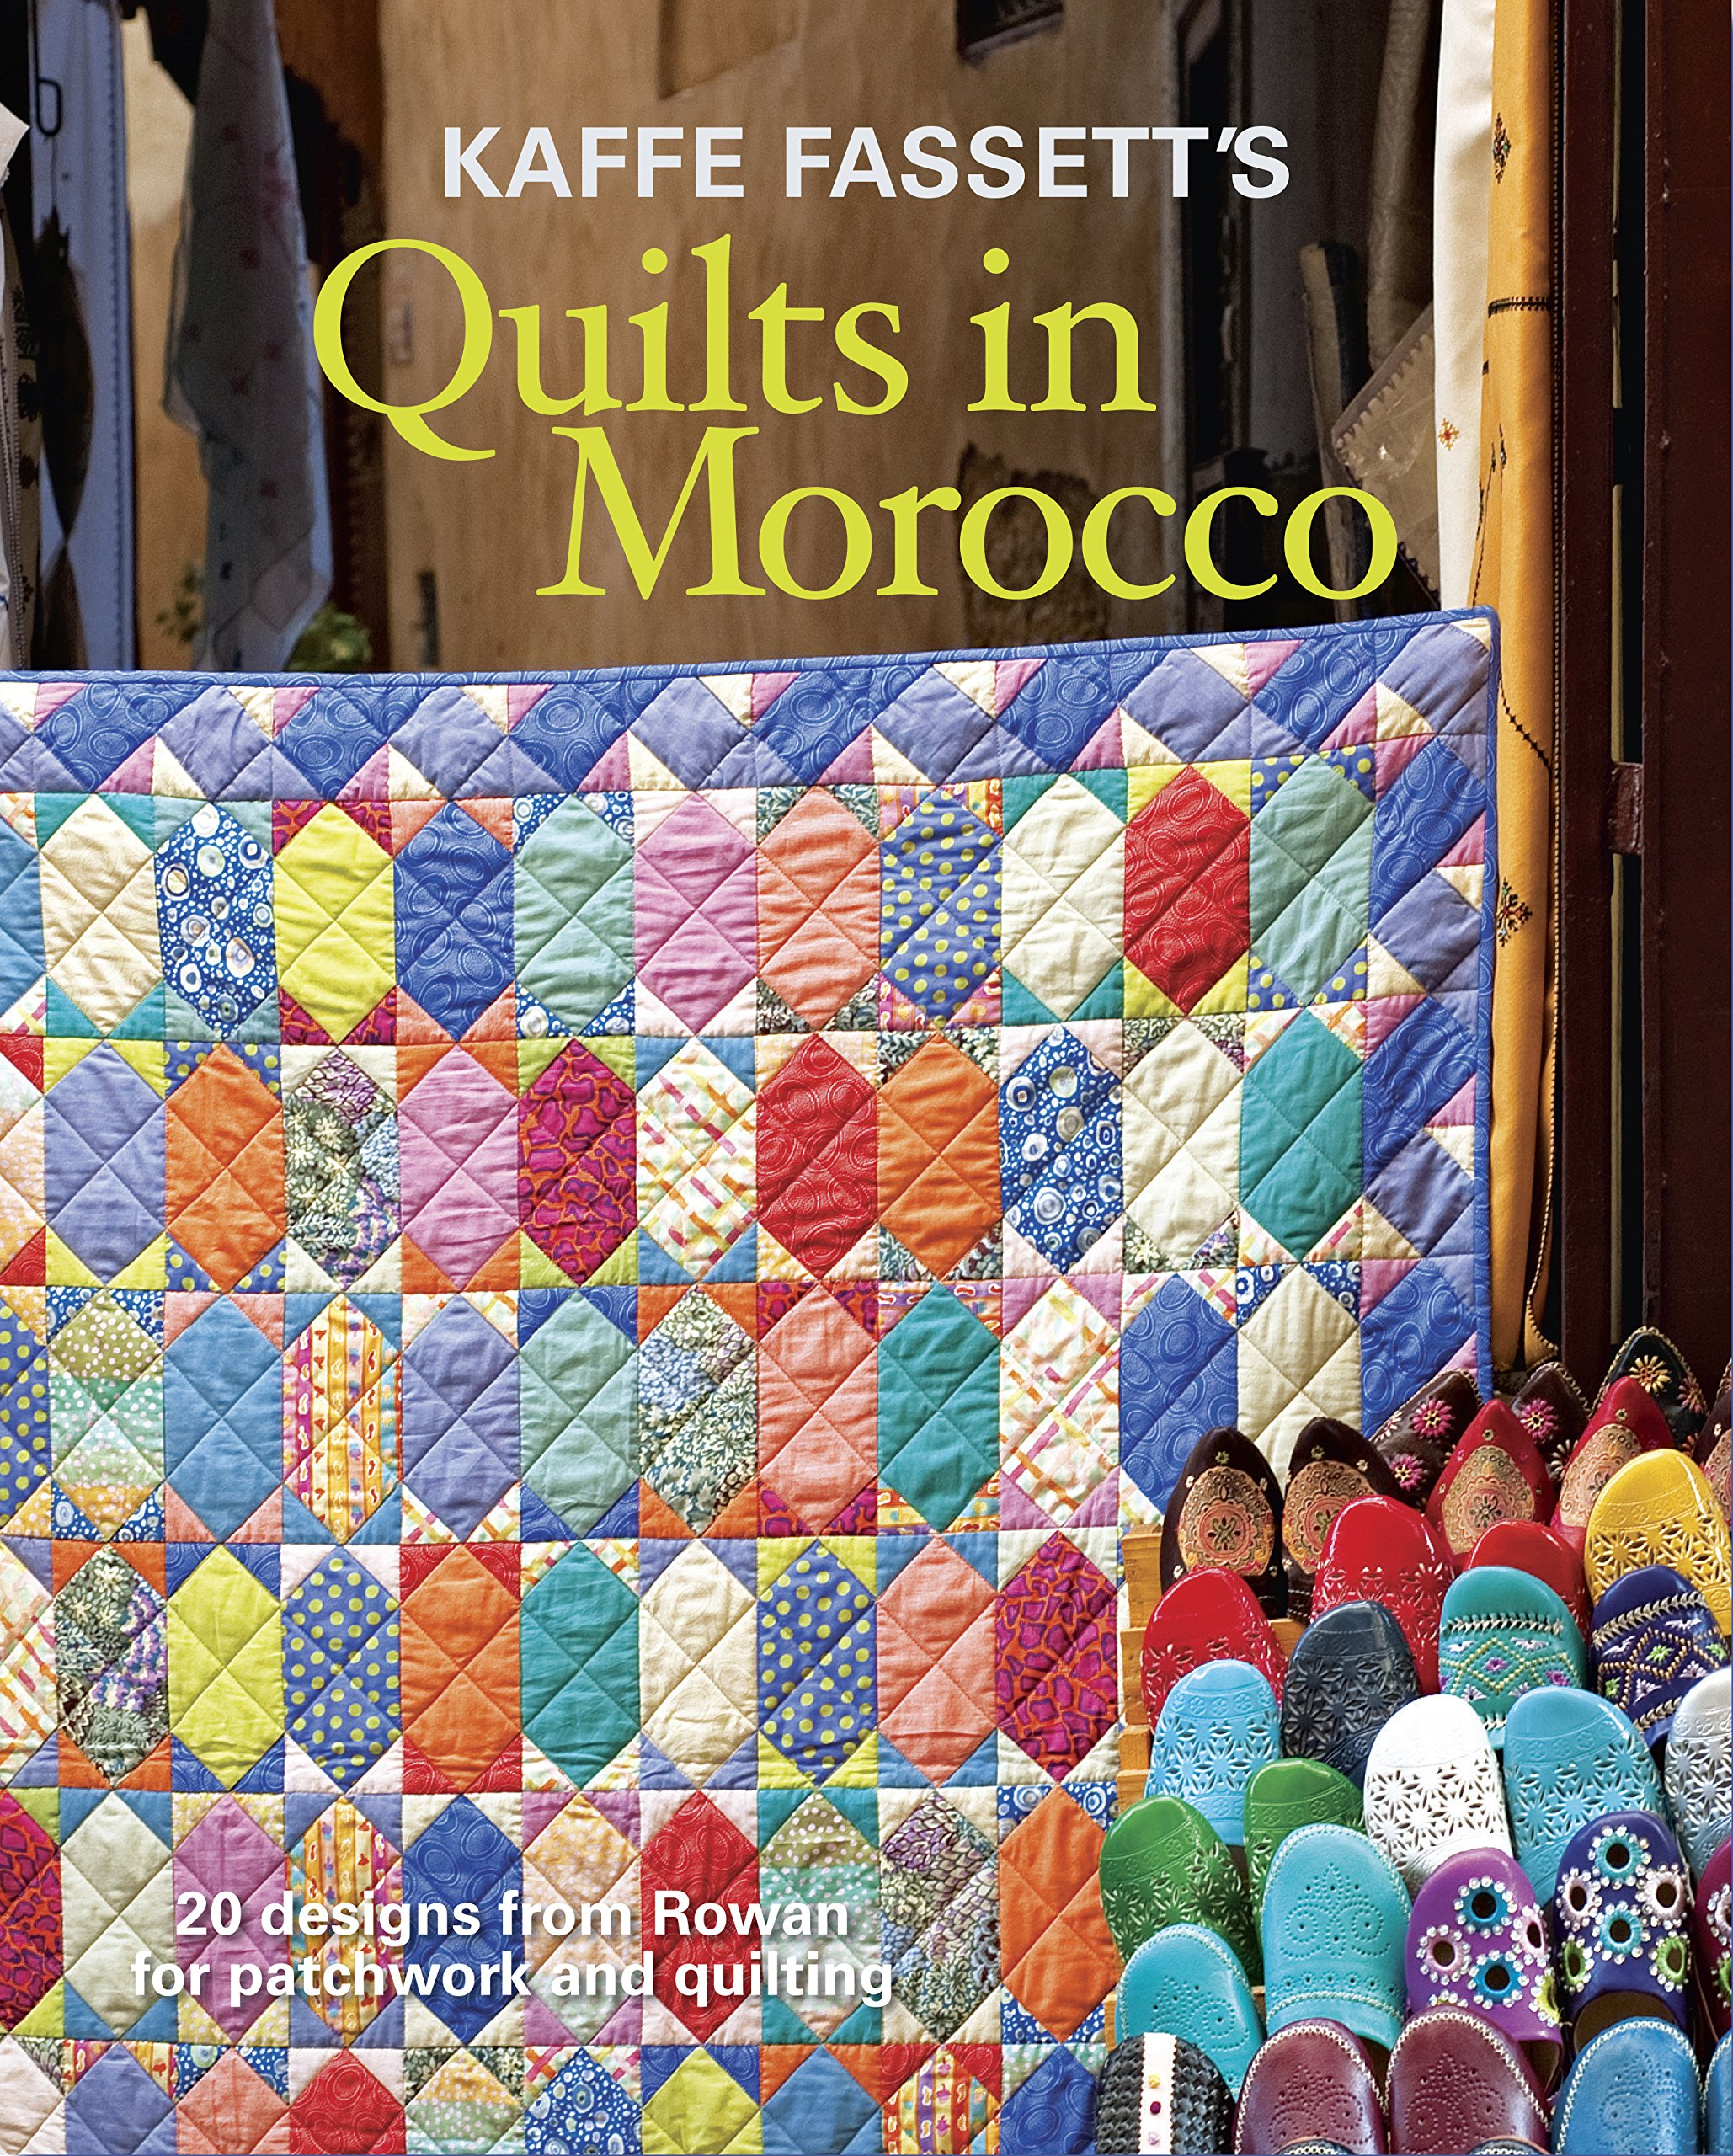 kaffe fassett s quilts in morocco 20 designs from rowan for